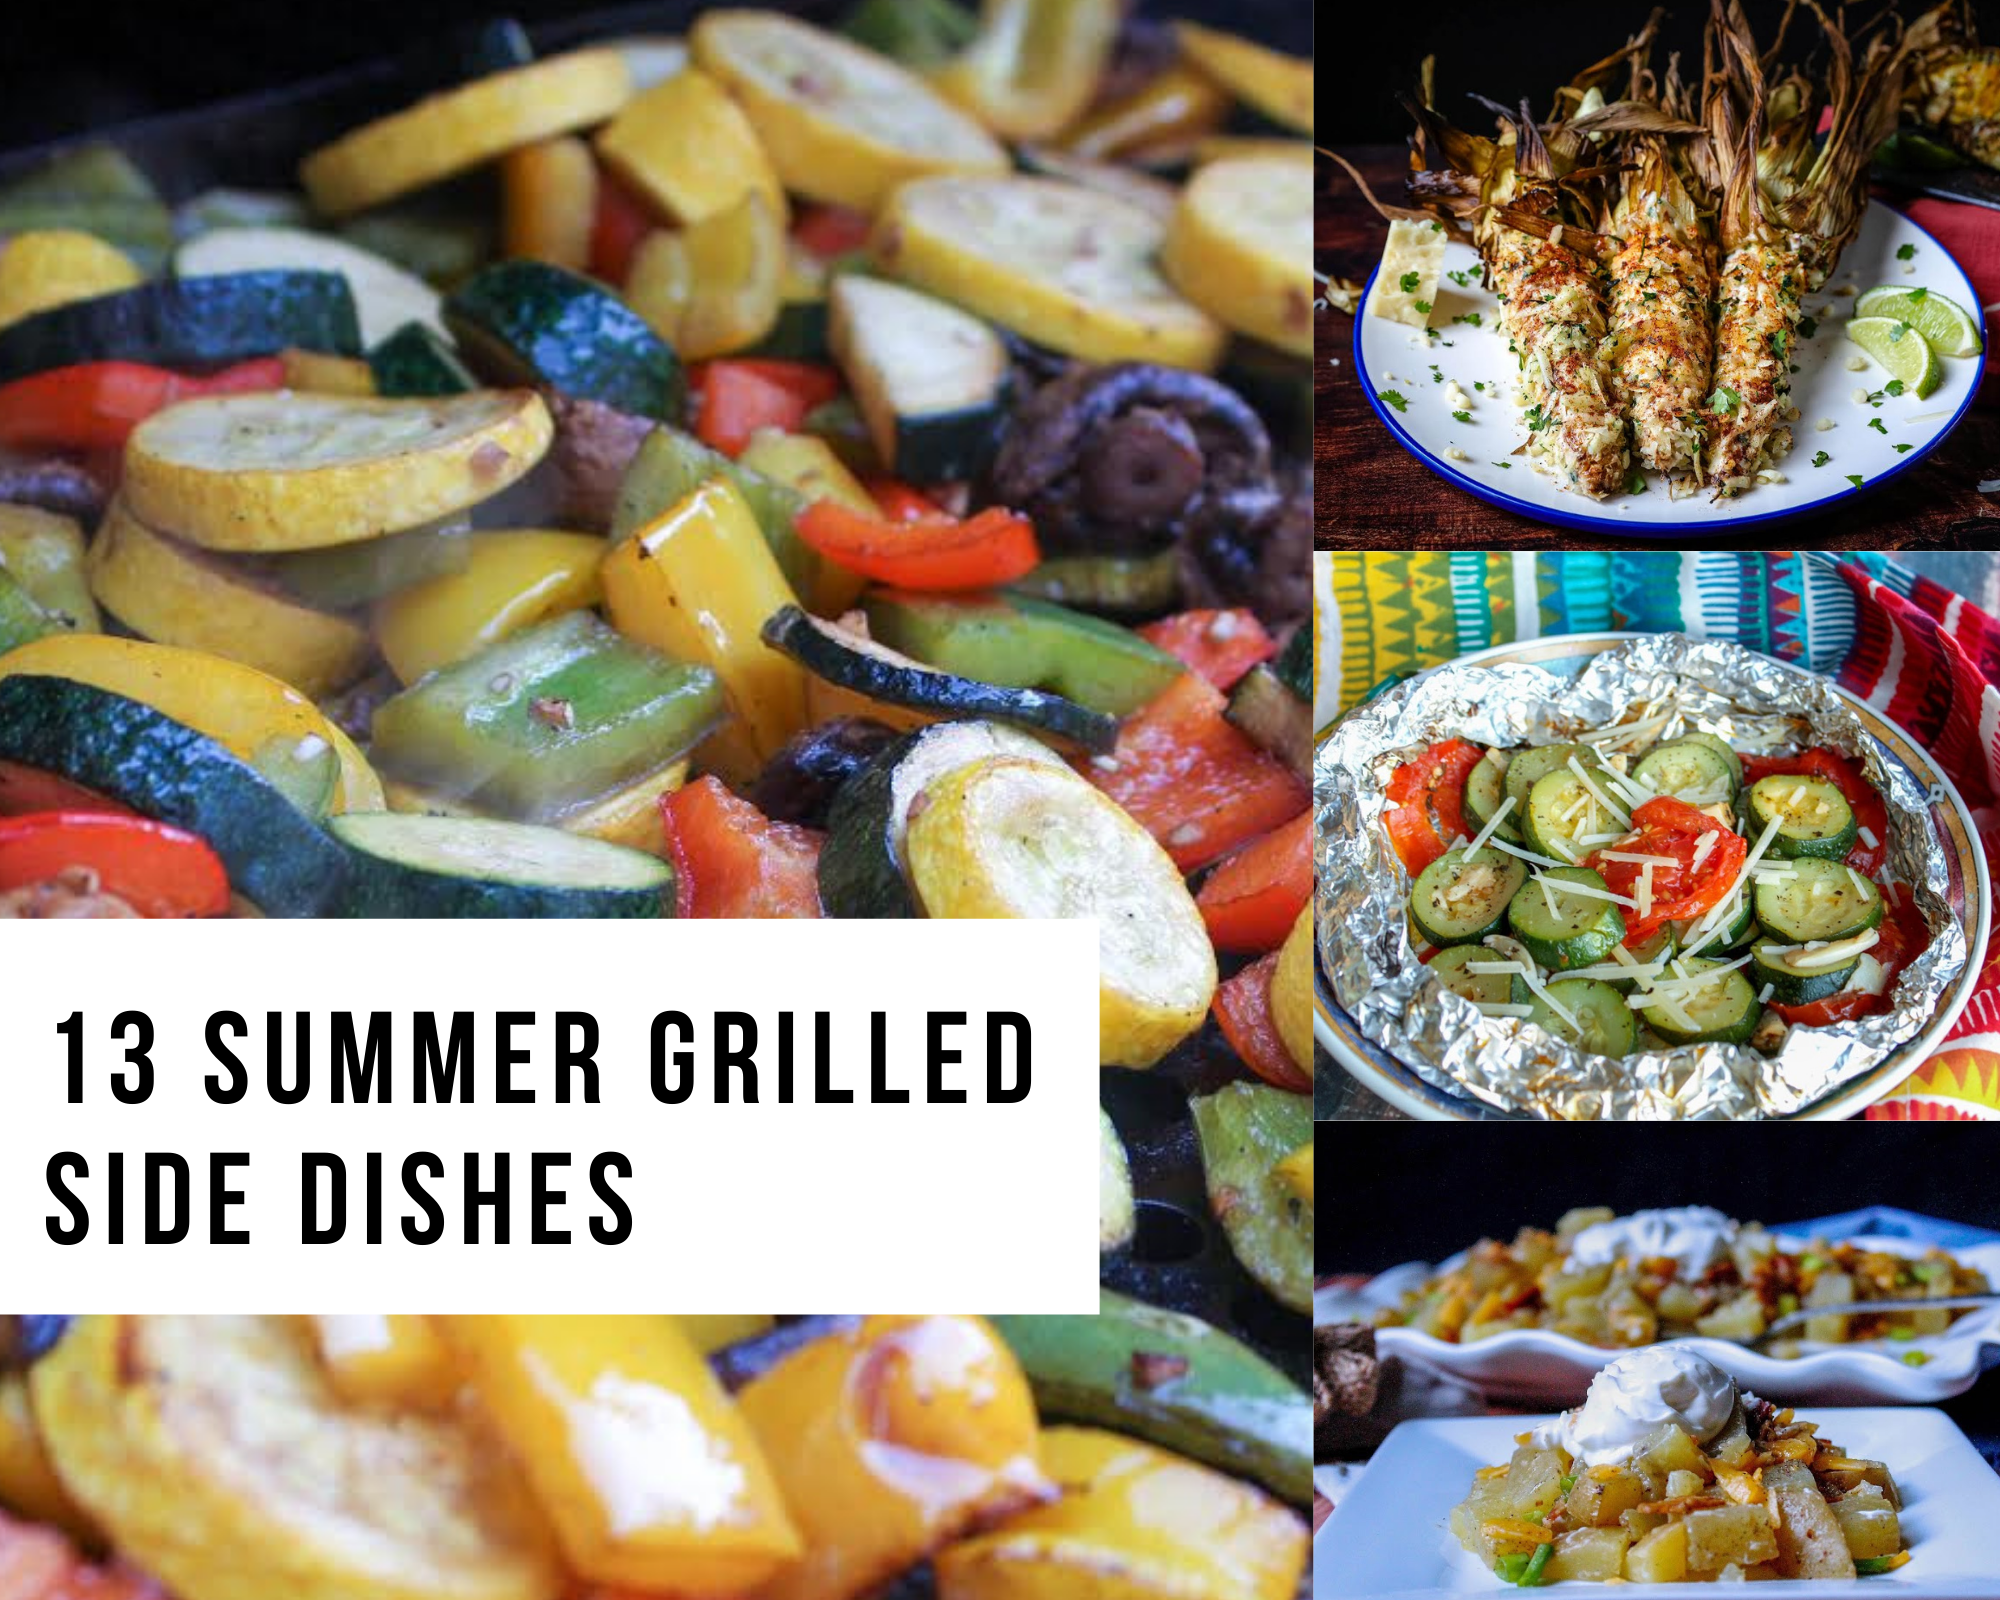 Summer grilled side dishes